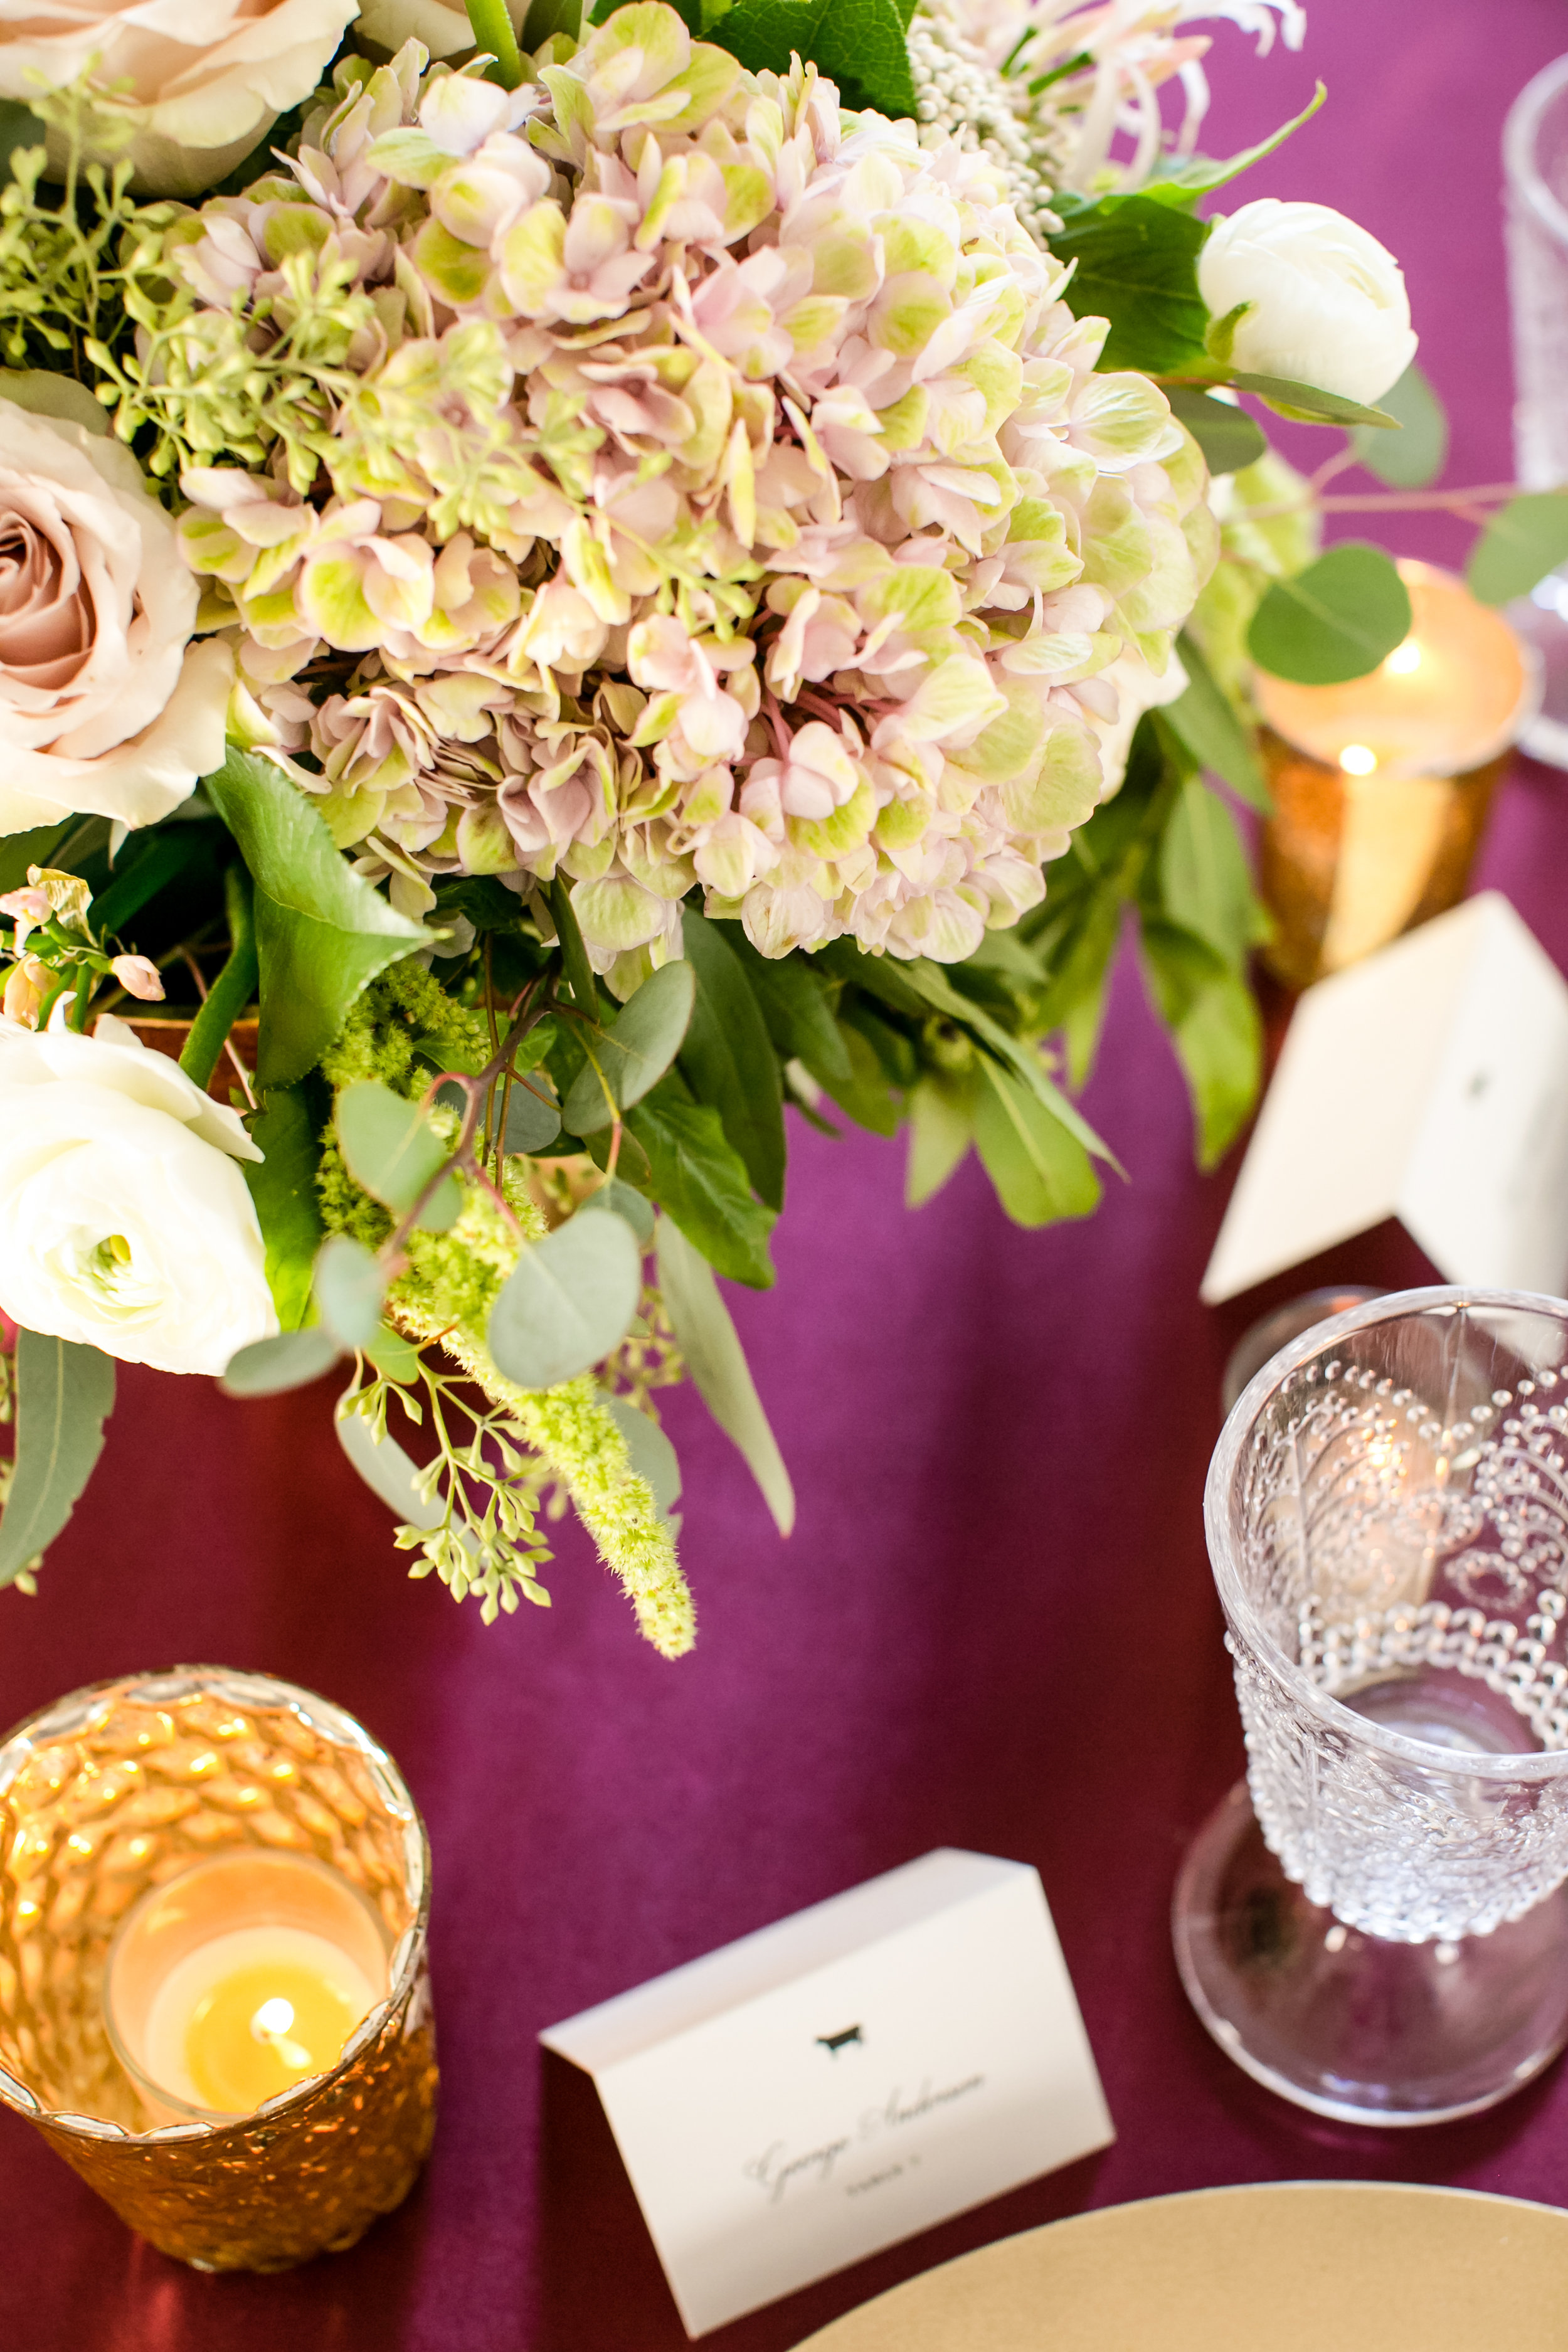 Jeannine Marie Photography | We've Got it Covered | Bel Fiore | Sixpence Events & Planning table styling for wedding crimson satin table cloth with gold chargers and white napkins, antique hydrangea